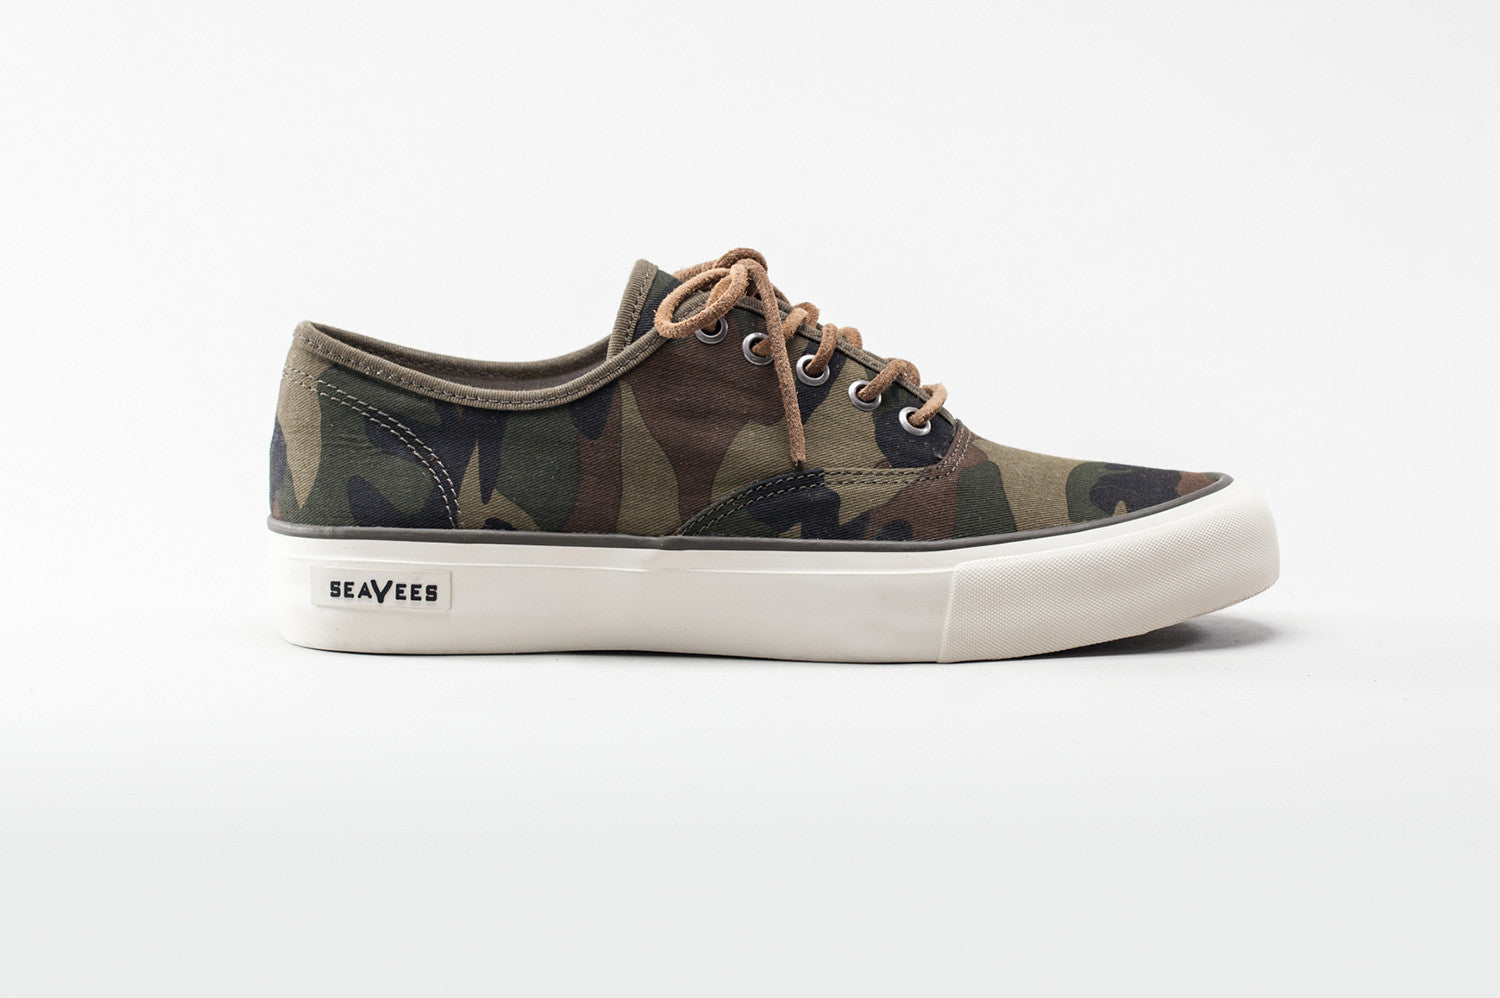 0664M_legend_sneaker_camo_olive_canvas_side